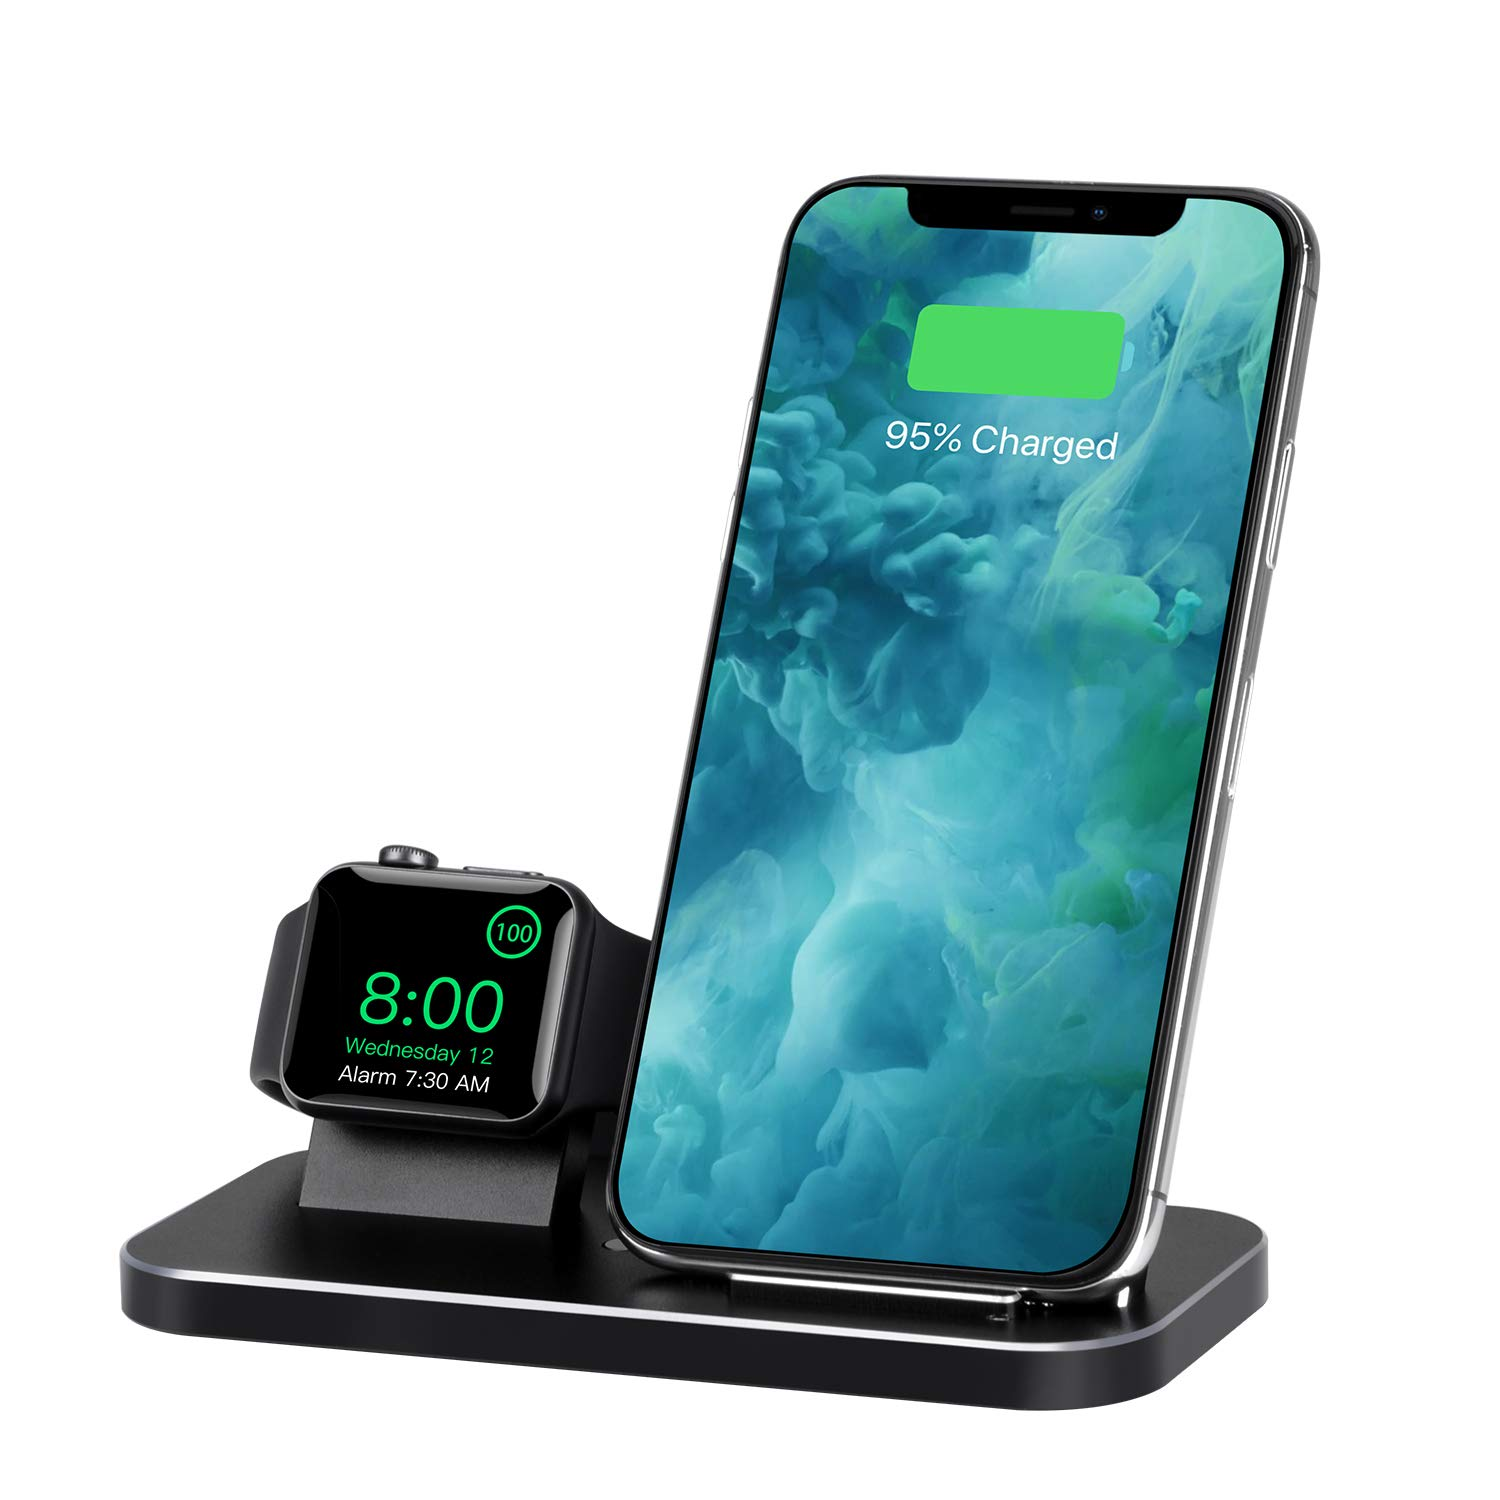 BNCHI 2 in 1 Aluminum Alloy Phone Wireless Charger Stand & Charging Station Compatible iWatch Holder Series 4/3/2/1/iPhone 11/11pro/X/Xs/Xs MAX/8 Plus/8 (Black) by BNCHI